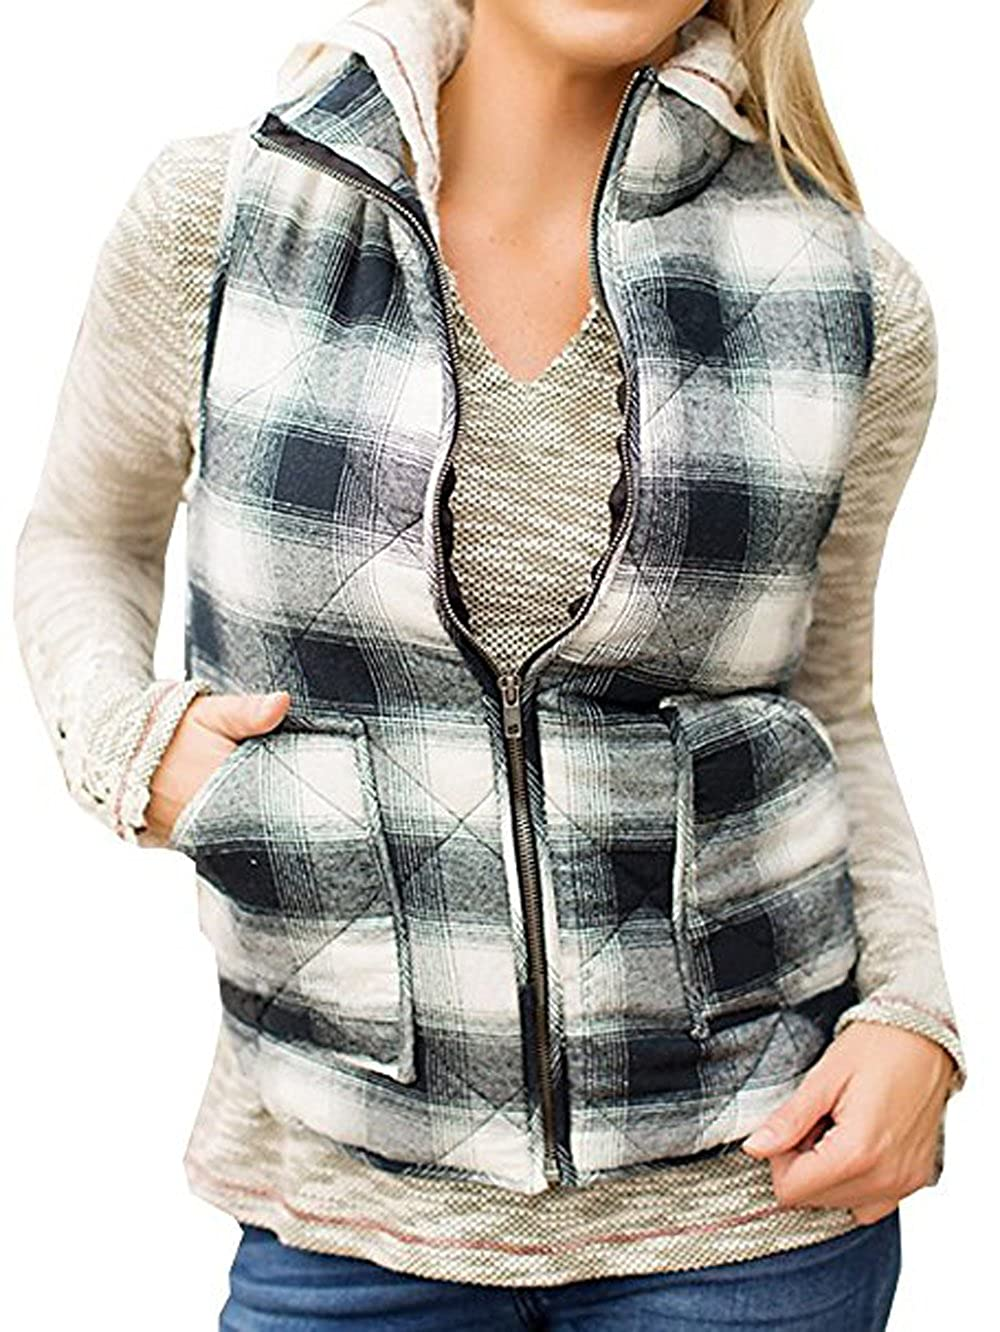 LuShmily Women's Sleeveless Zip-up Plaid Quilted Vest Coats Jacket LZYVST001